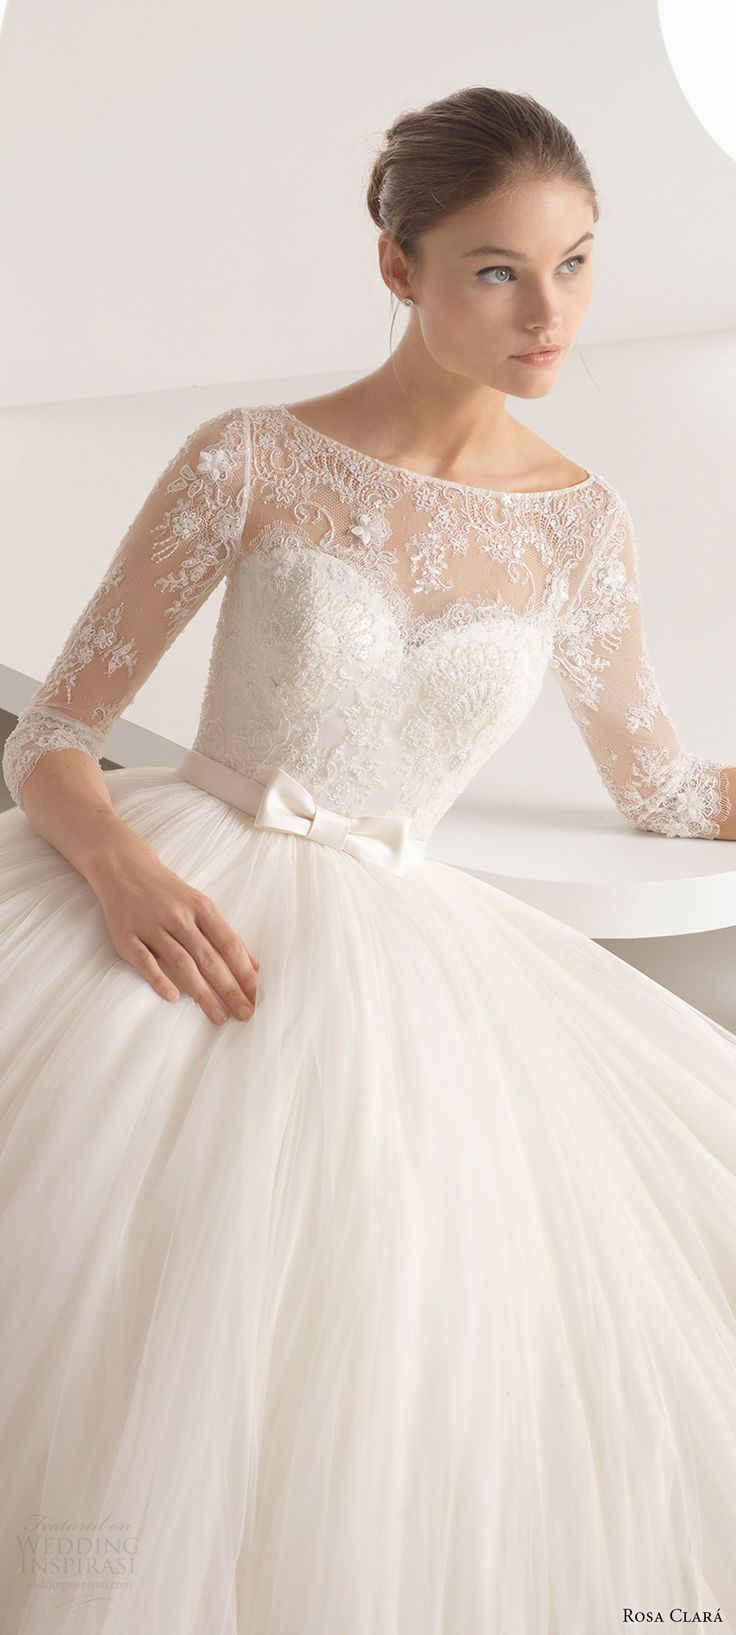 rosa clara 2018 bridal trends 3 quarter illusion sleeves bateau neck lace bodice ball gown wedding dress (alina) zv romantic princess -- 2018 Wedding Dress Trends to Love Part 2